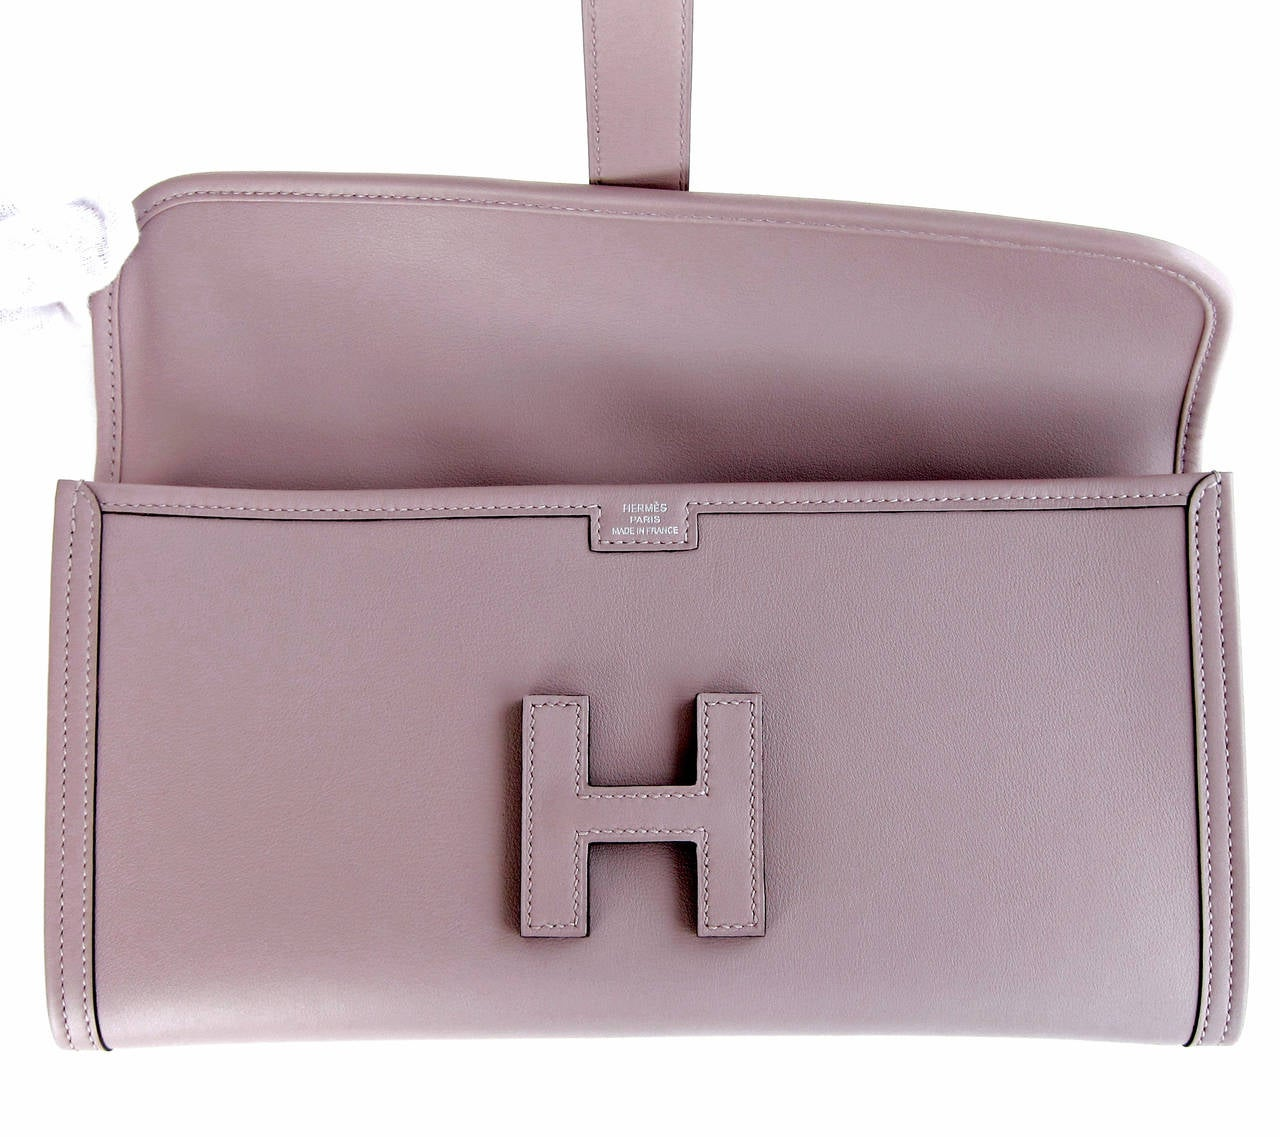 HERMES Glycine Lilac Jige Swift Elan Leather Clutch 29cm So Pretty! 6